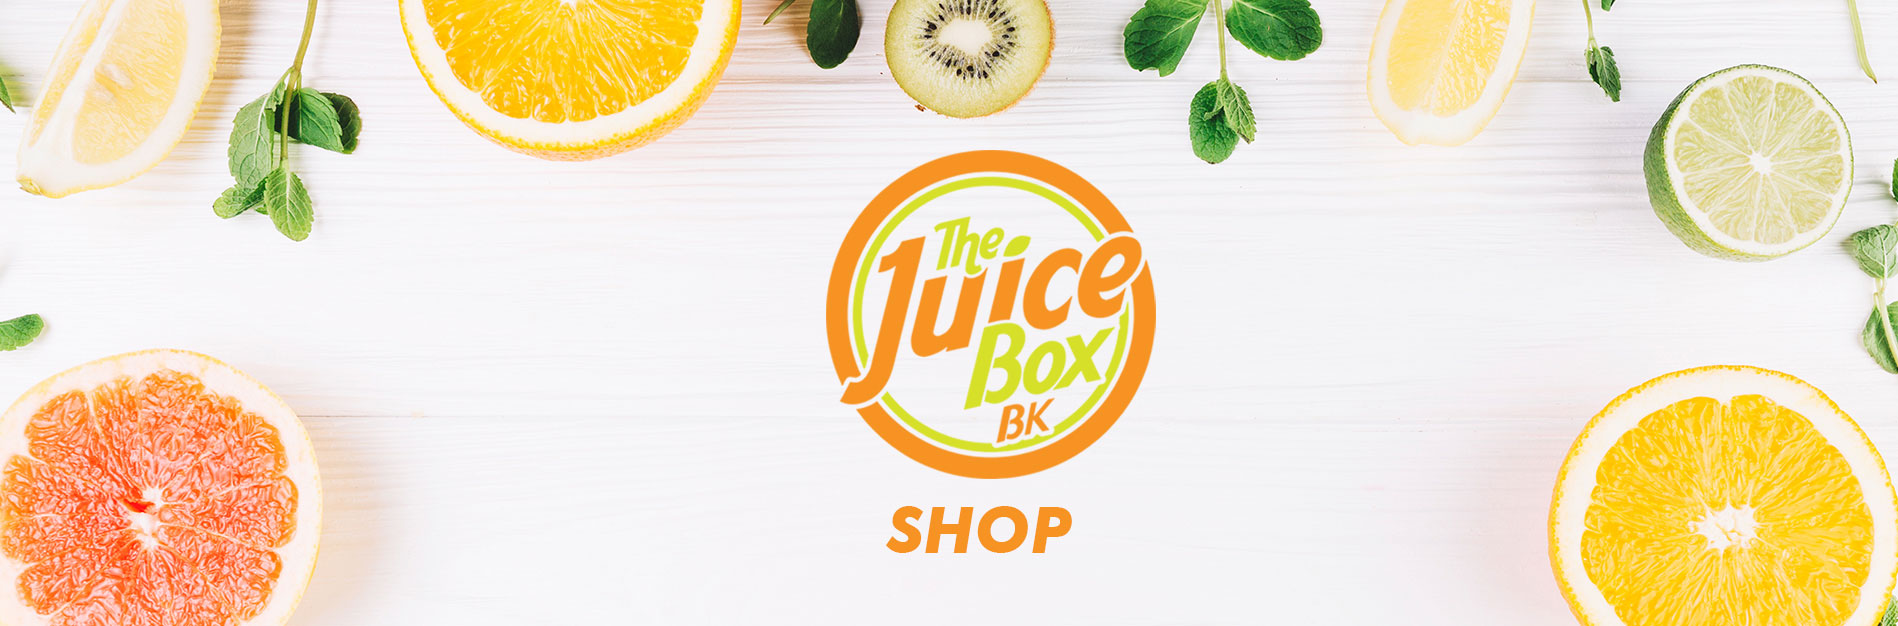 The Juice Box BK Shop